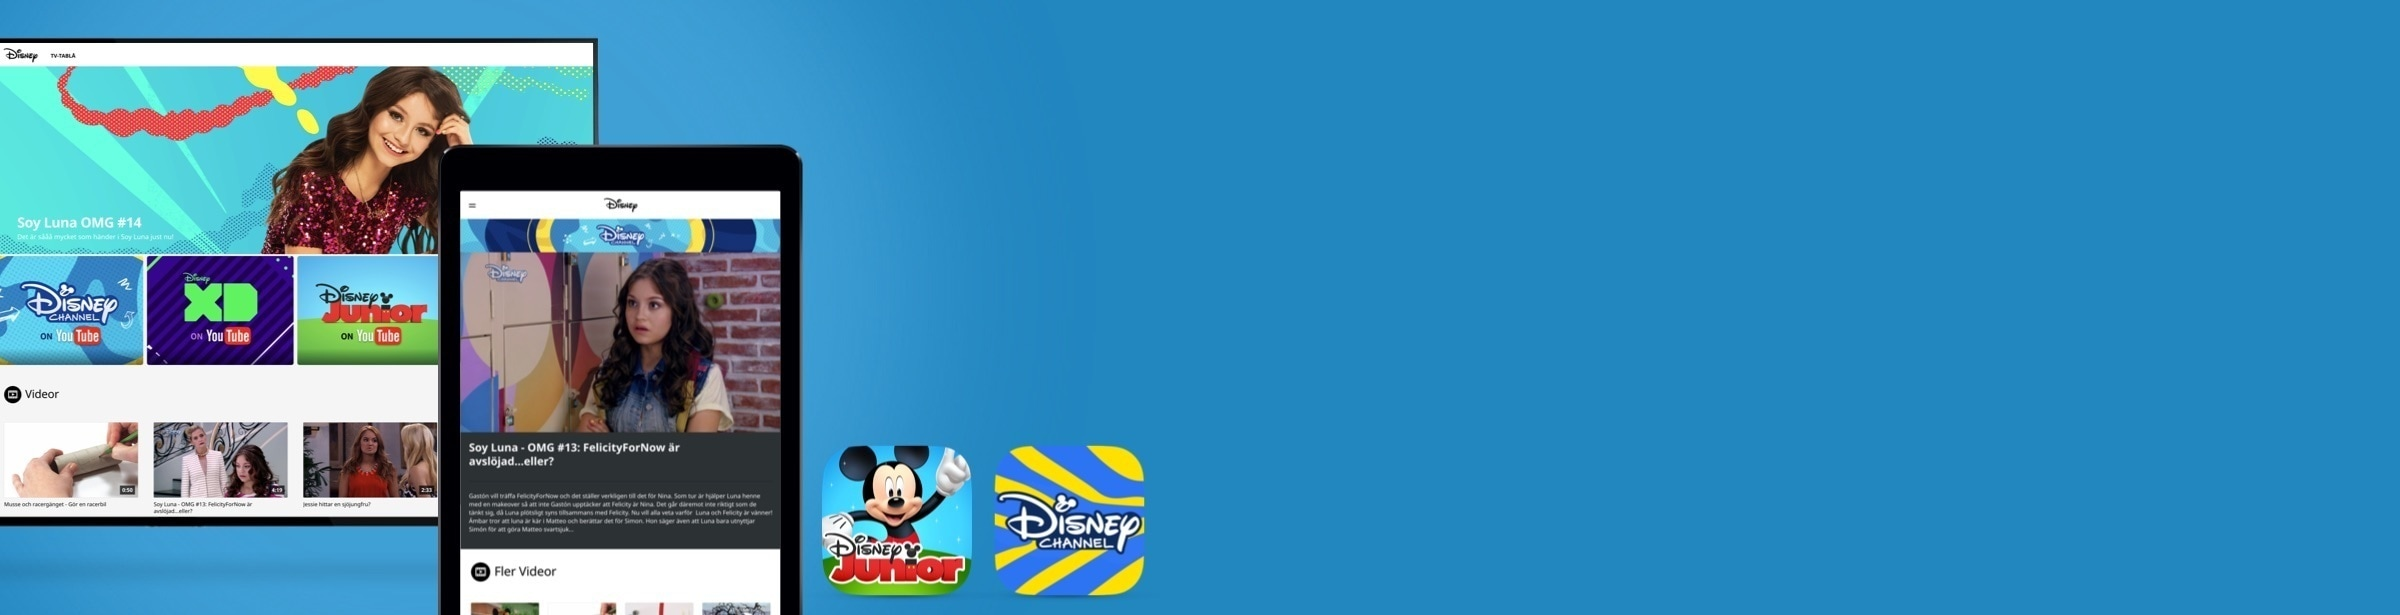 Disney Channel app | Disney Junior app